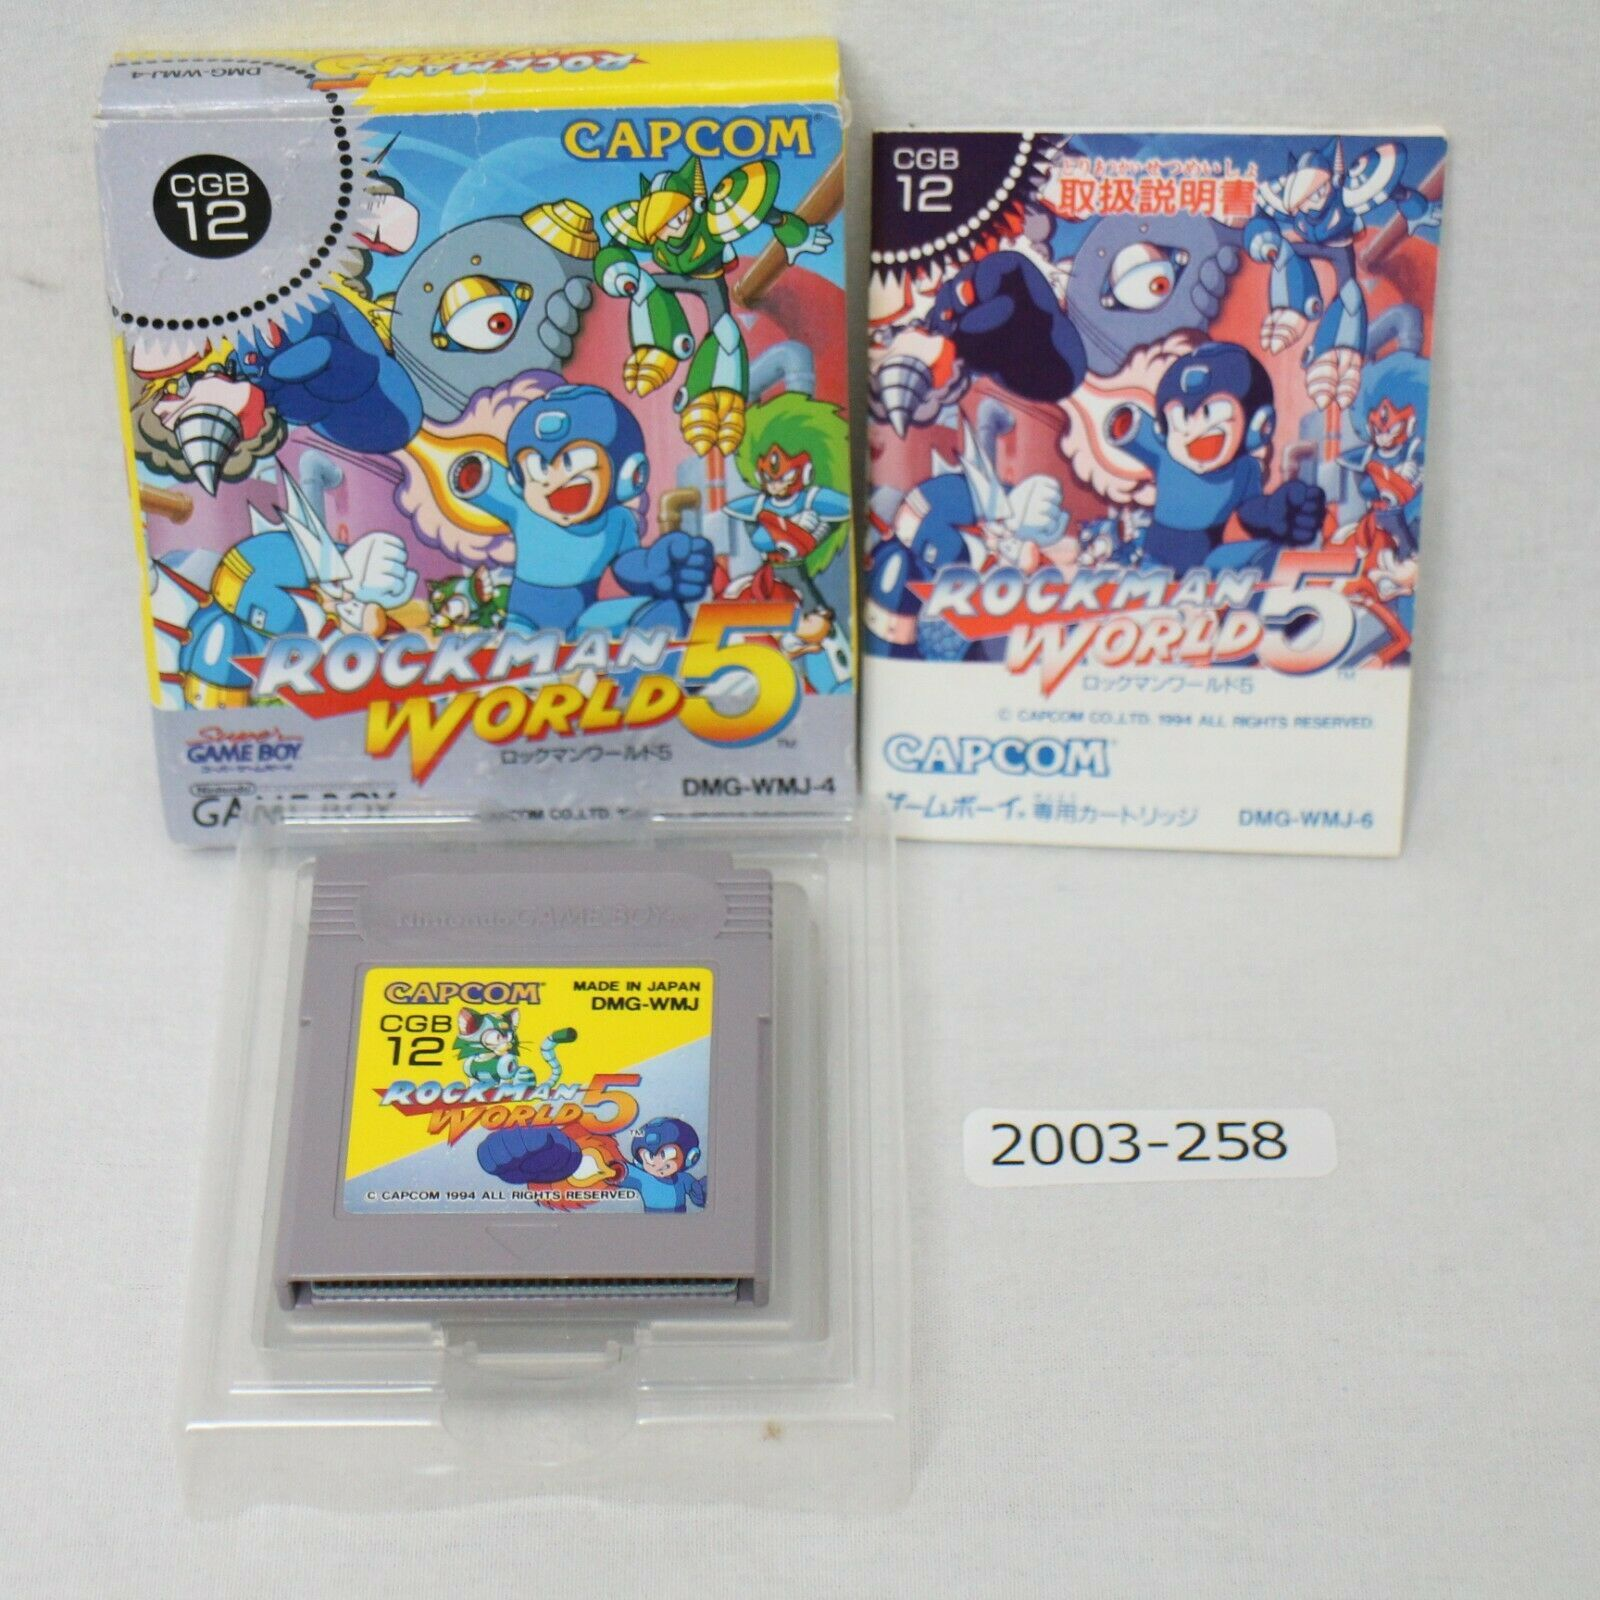 Primary image for Nintendo Gameboy Rockman World 5 Megaman con / Caja Laboral Japón 2003-258